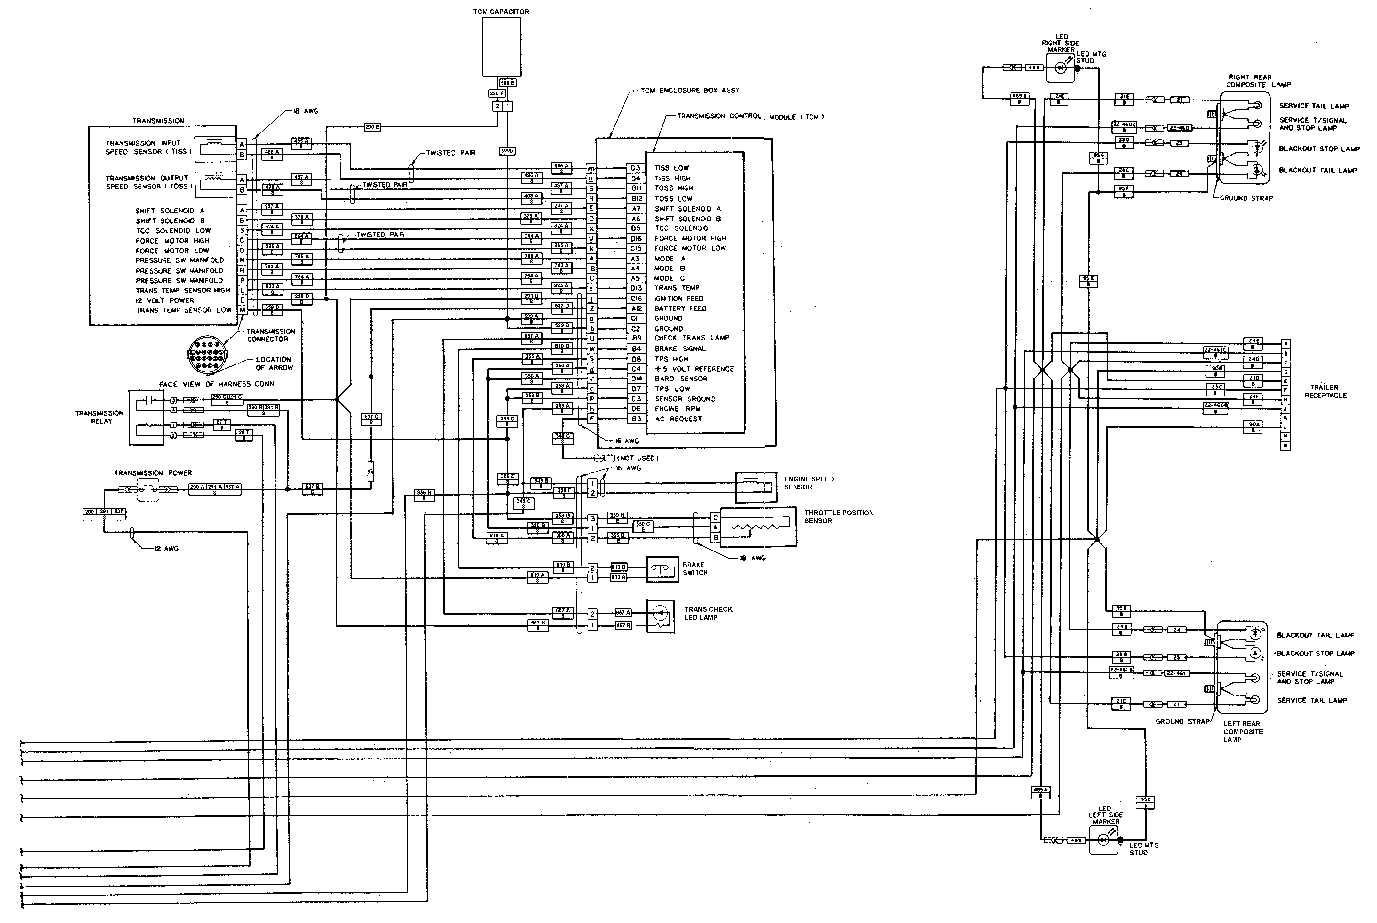 m1009 wiring diagram